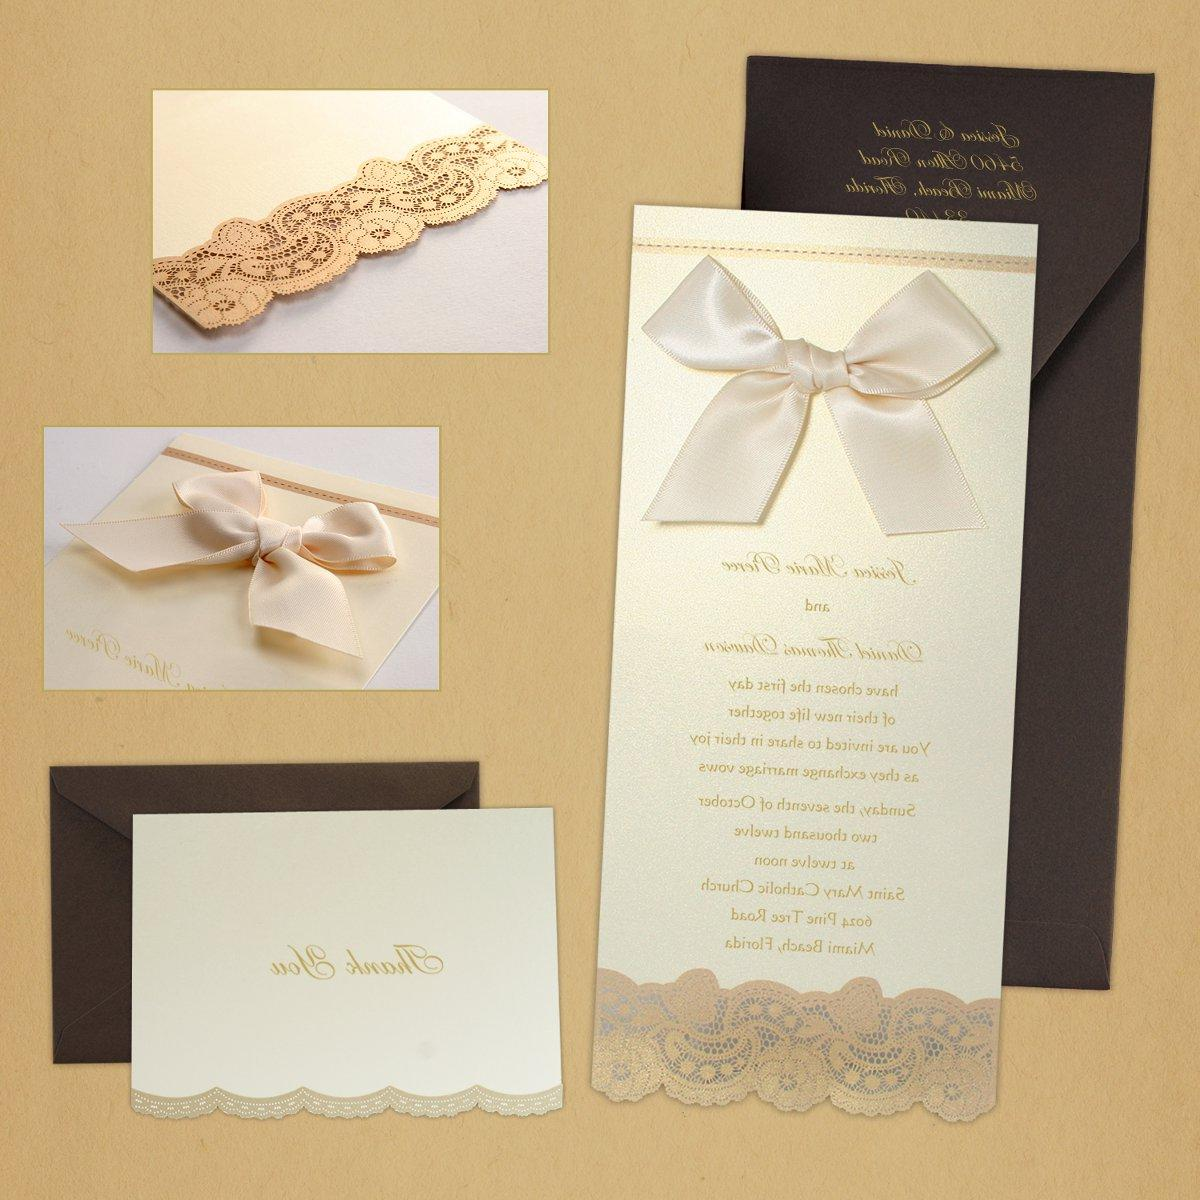 This gorgeous wedding invitation features a luminescent gold shimmer,